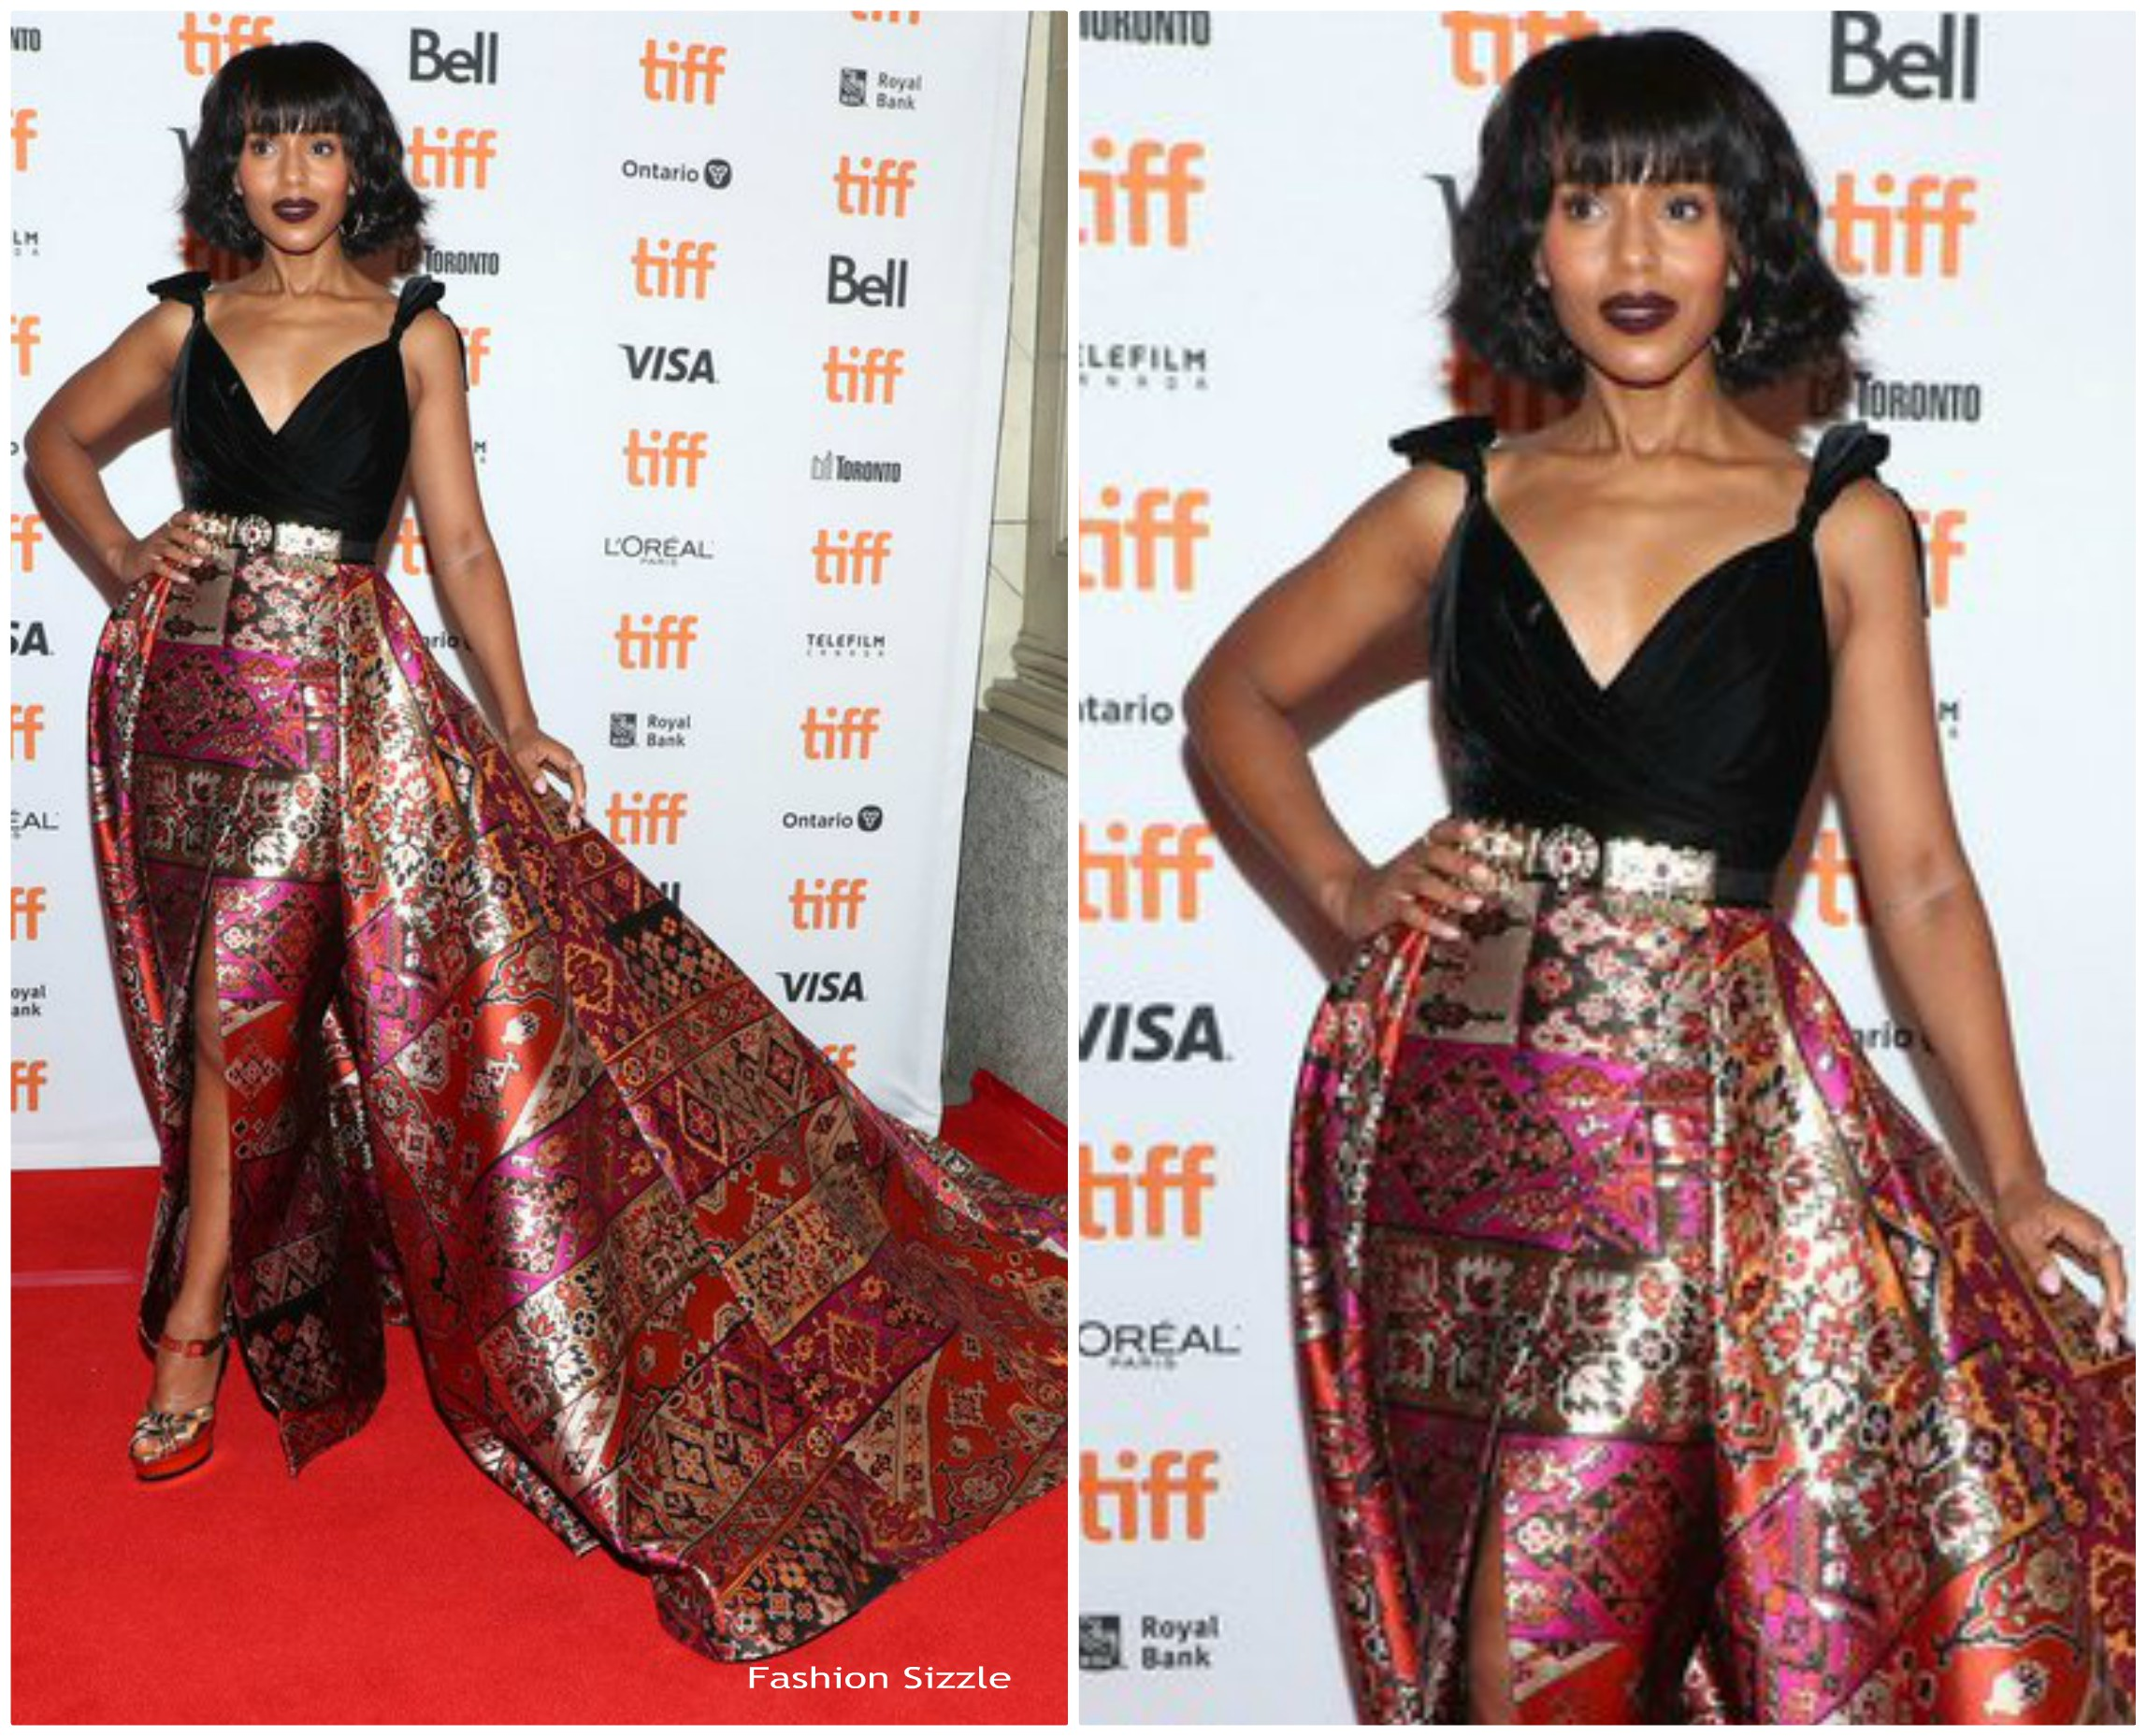 kerry-washington-in-zuhair-murad-couture-american-son-toronto-film-frstival-premiere